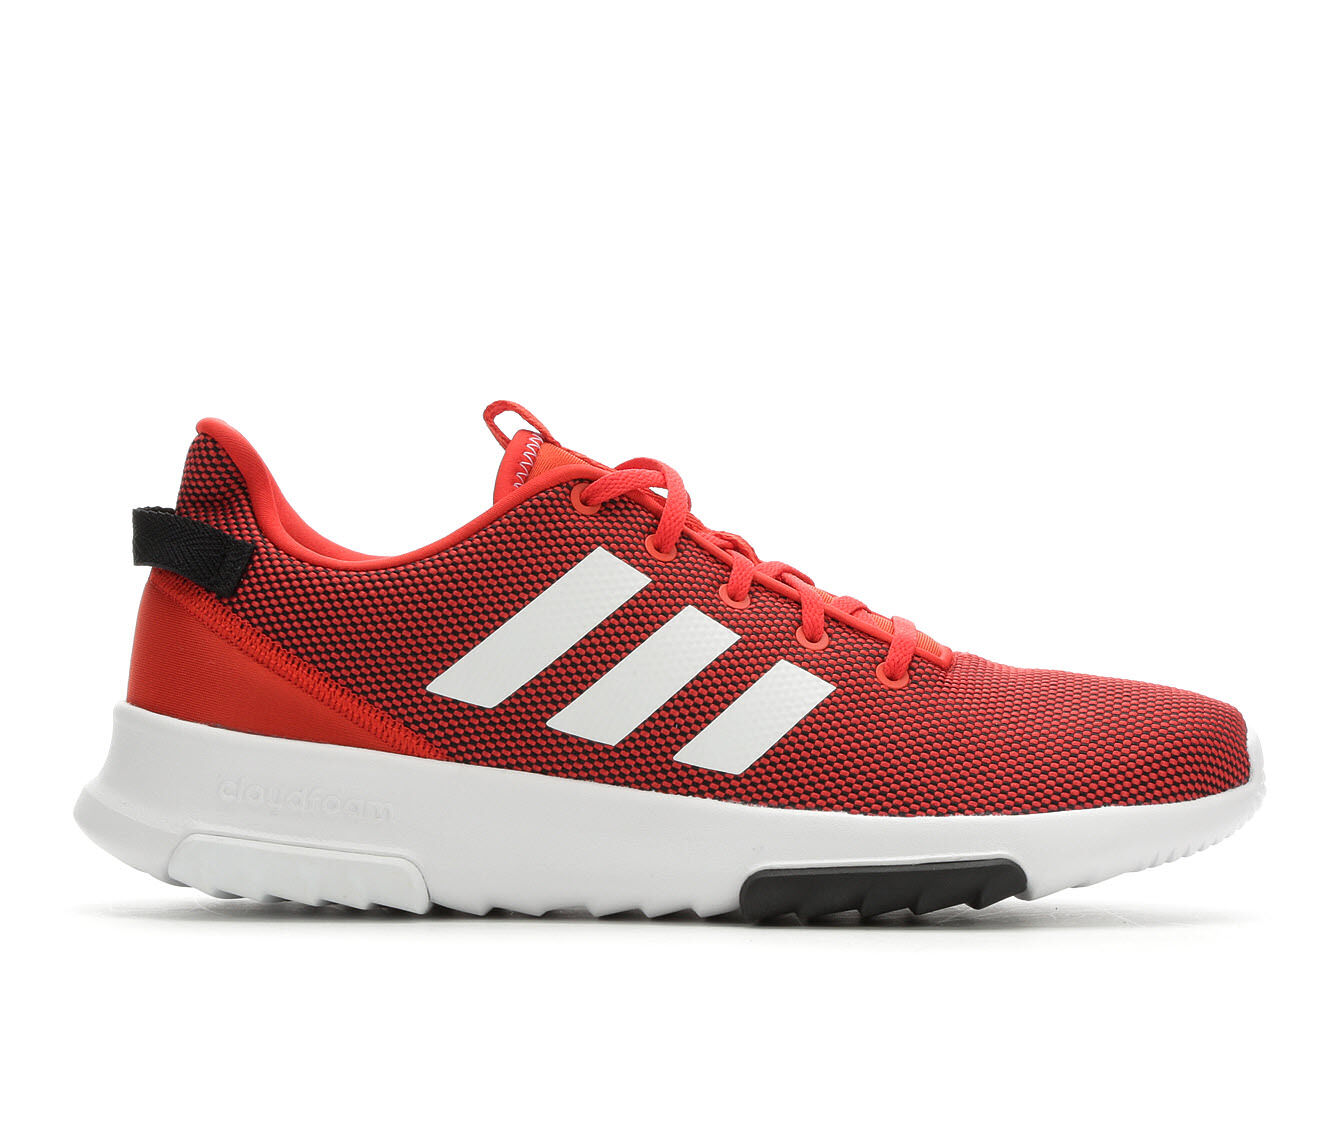 Men's Adidas Cloudfoam Racer TR Running Shoes Red/White/Black